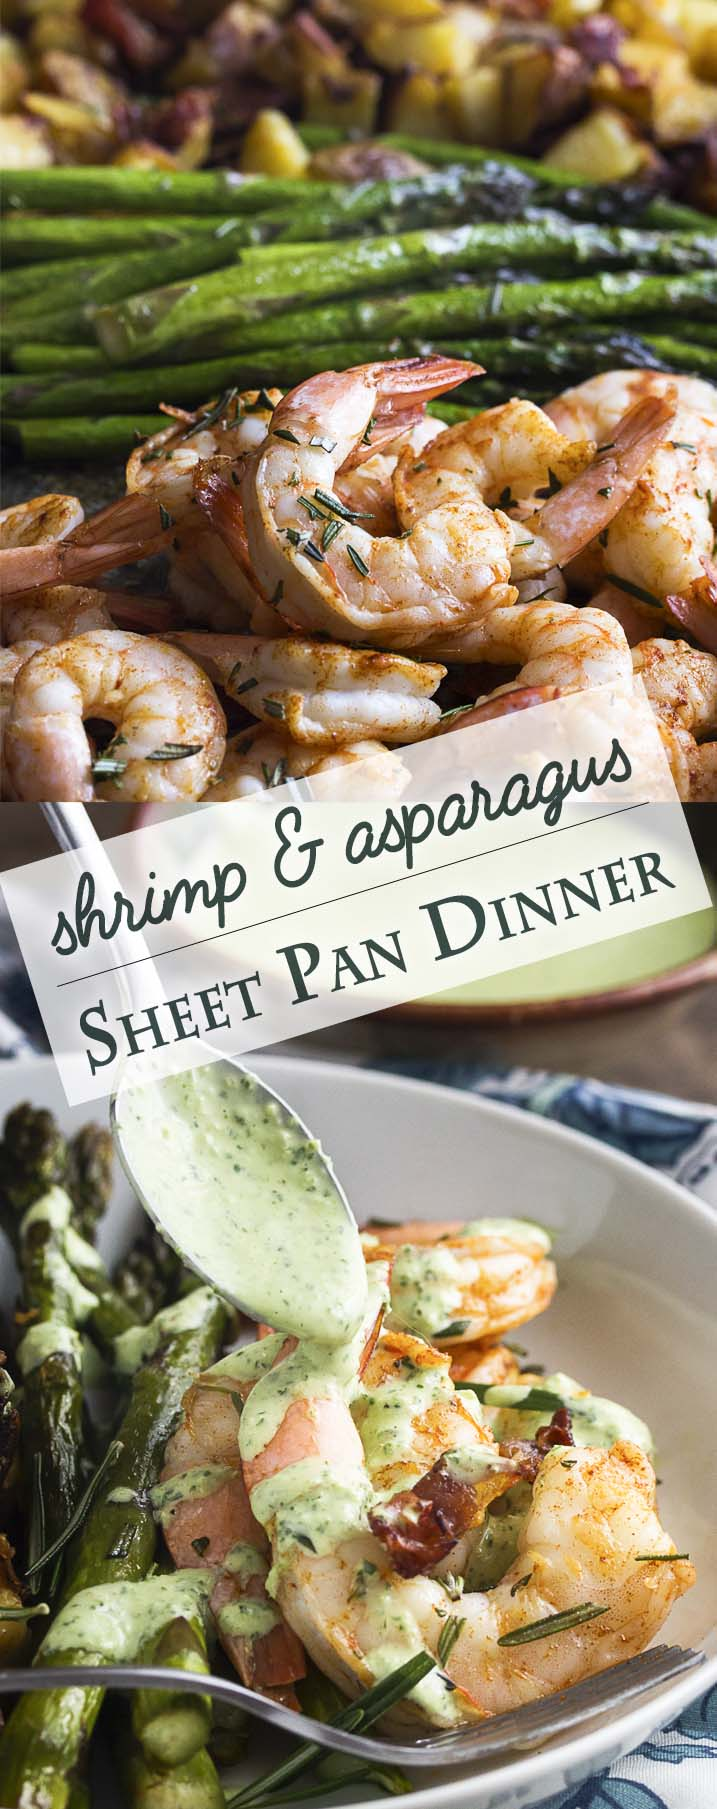 Healthy and easy! This roasted shrimp, asparagus, and potato sheet pan dinner will have food on the table in no time, but without a pile of pots to wash. | justalittlebitofbacon.com